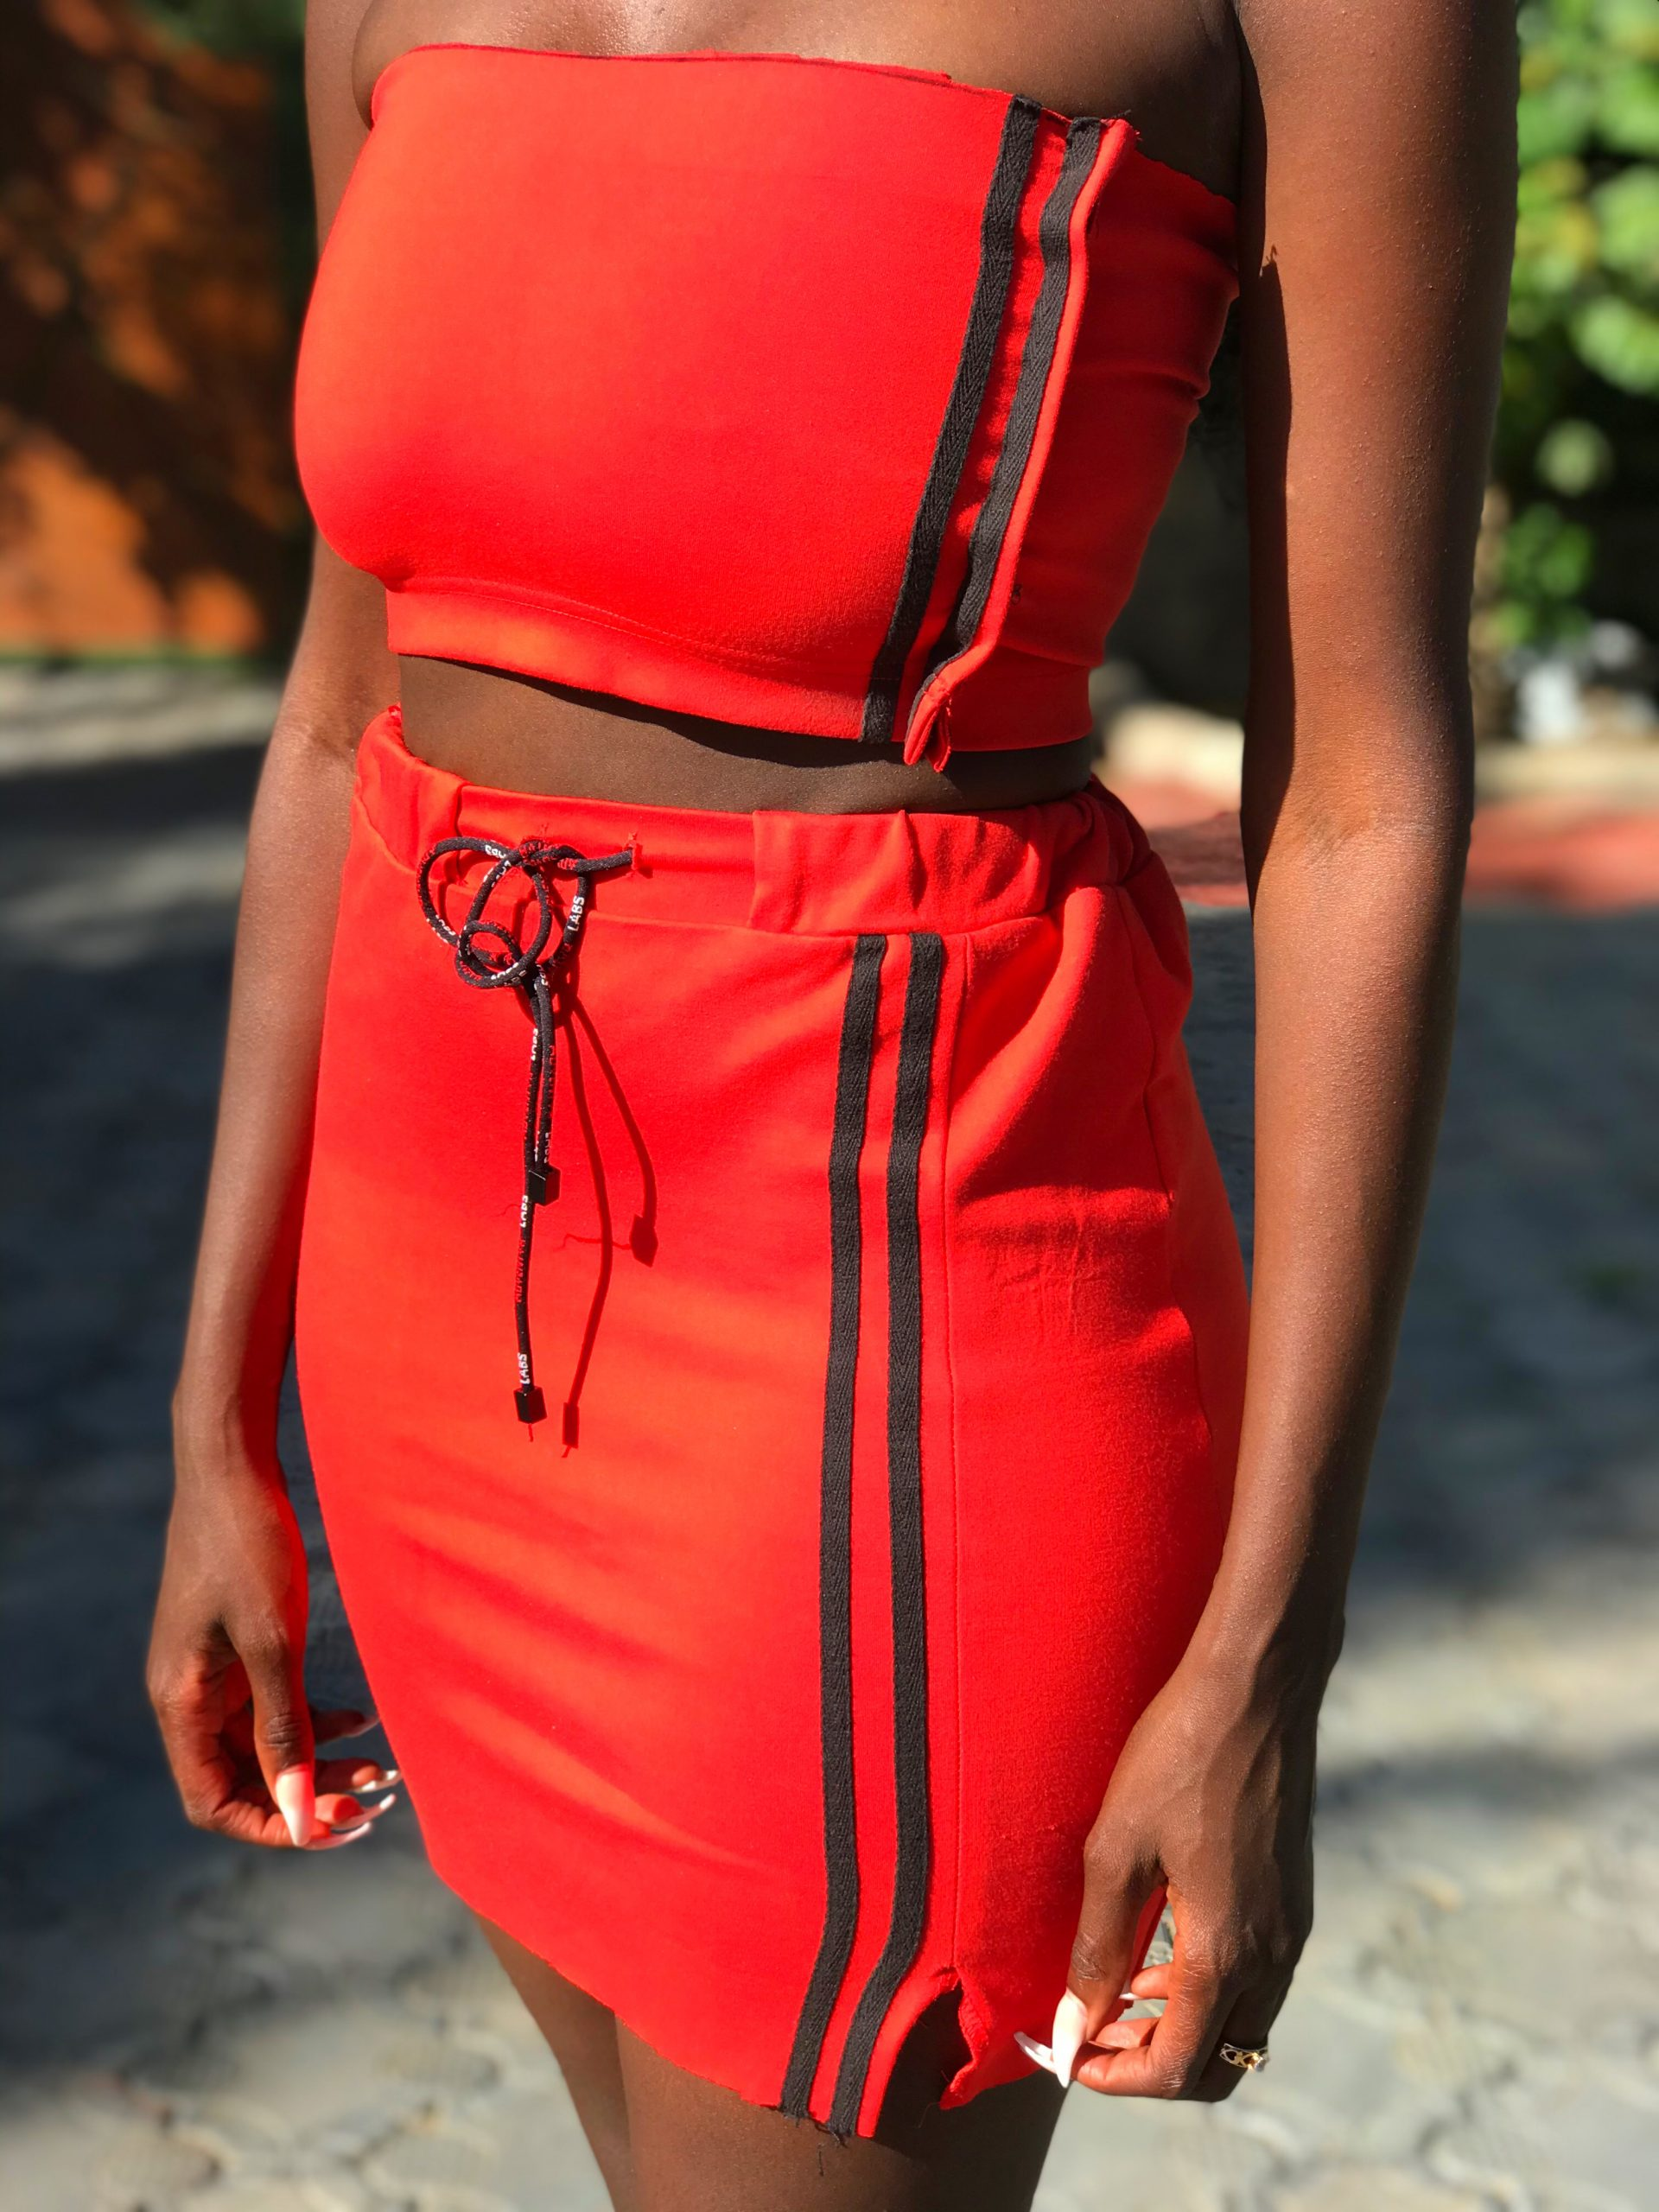 SEXY 2 PIECE DIY- GUIDELINES TO CONSIDER